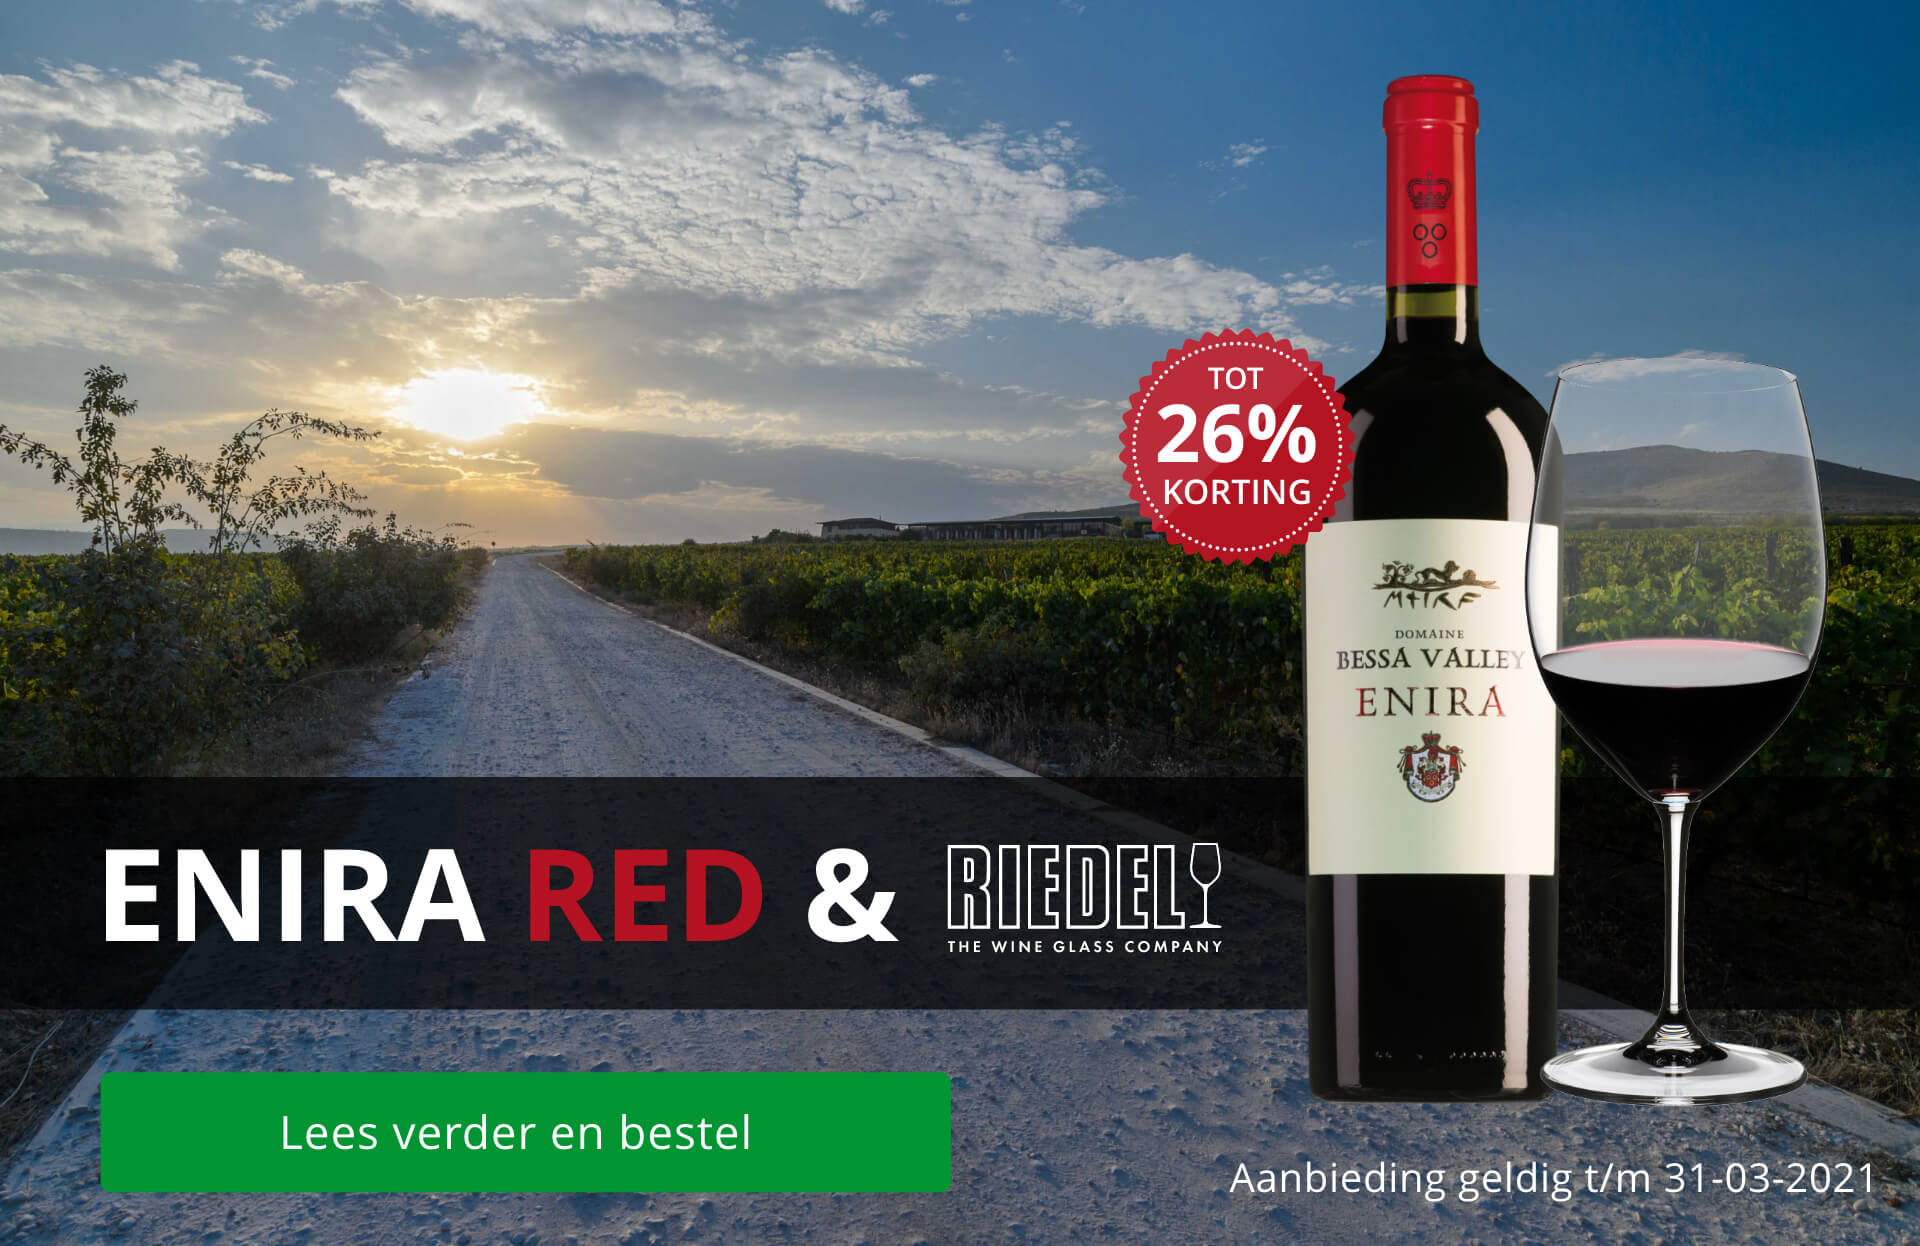 Enira Red & Riedel